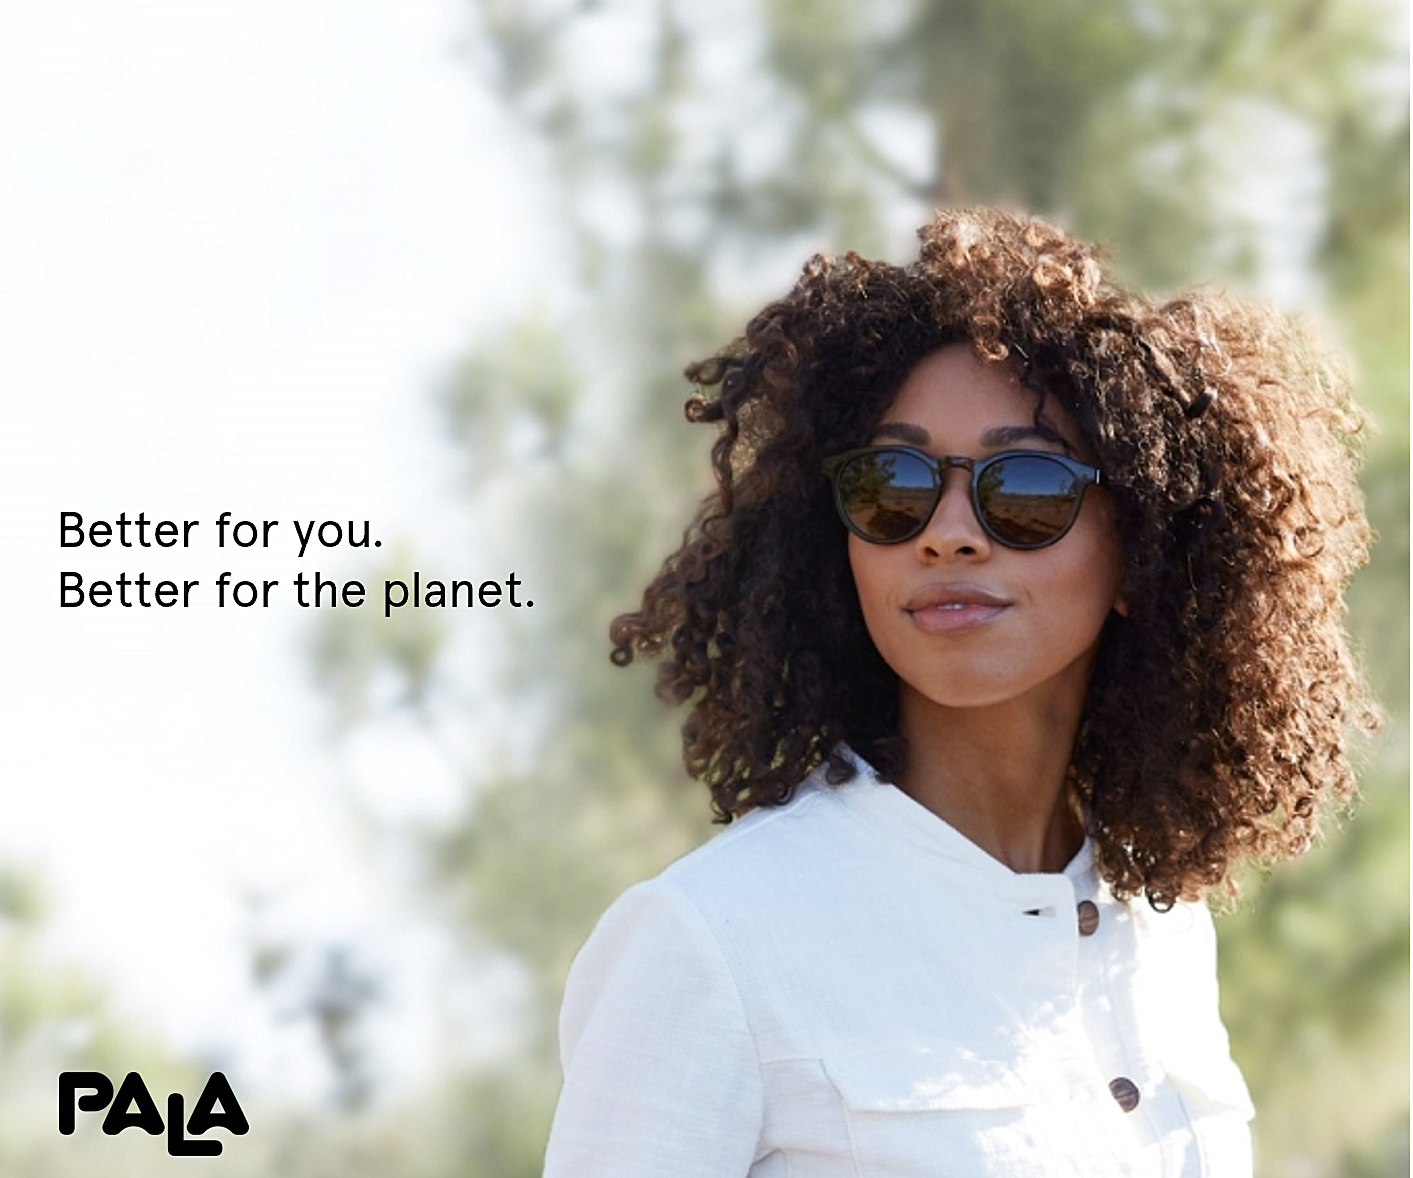 pala bio-acetate sunglasses